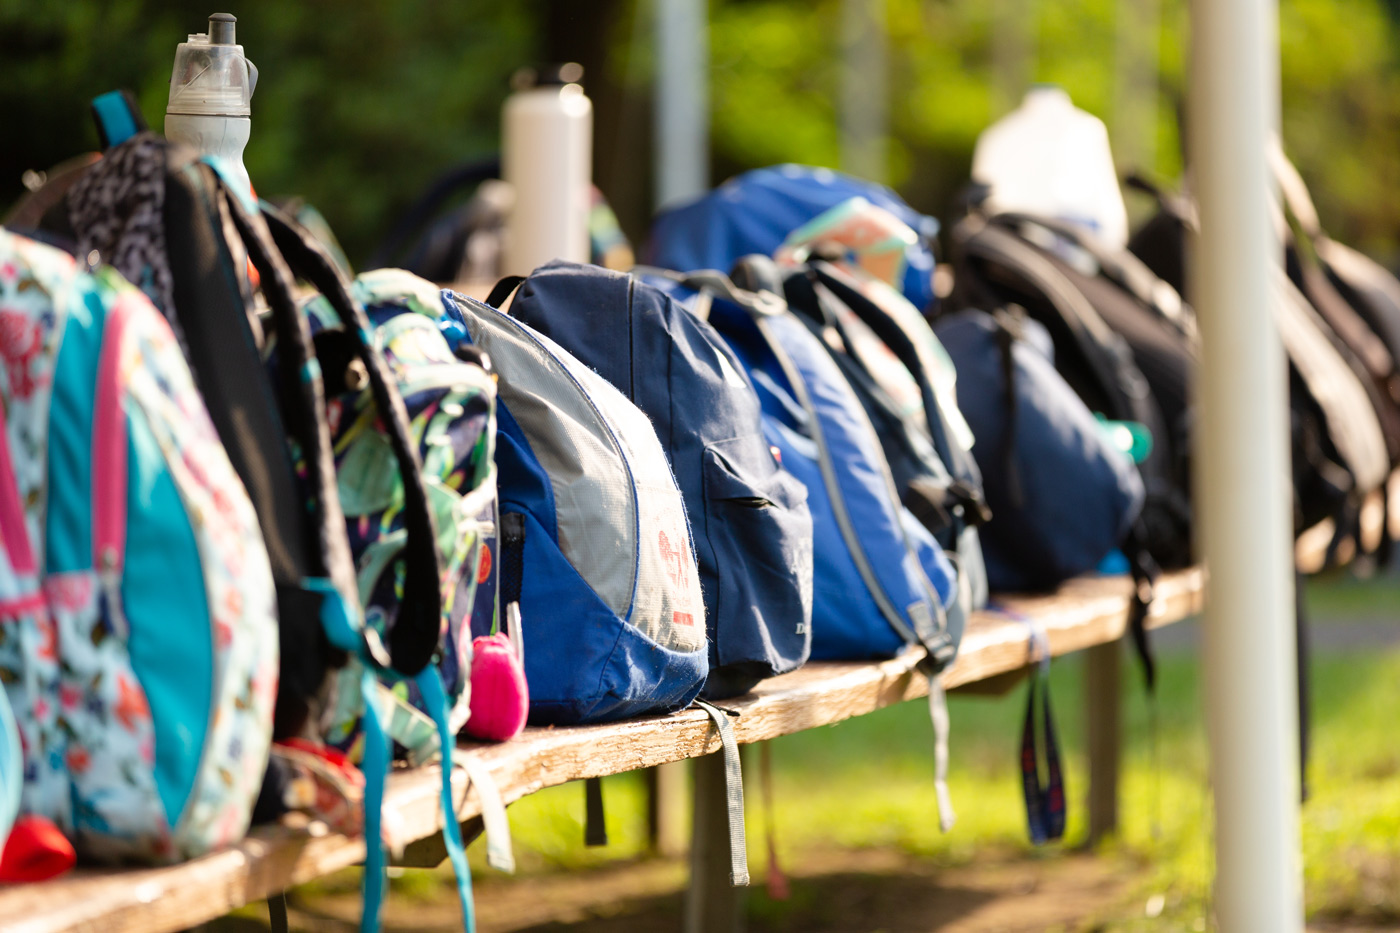 Backpacks lined up on a bench.